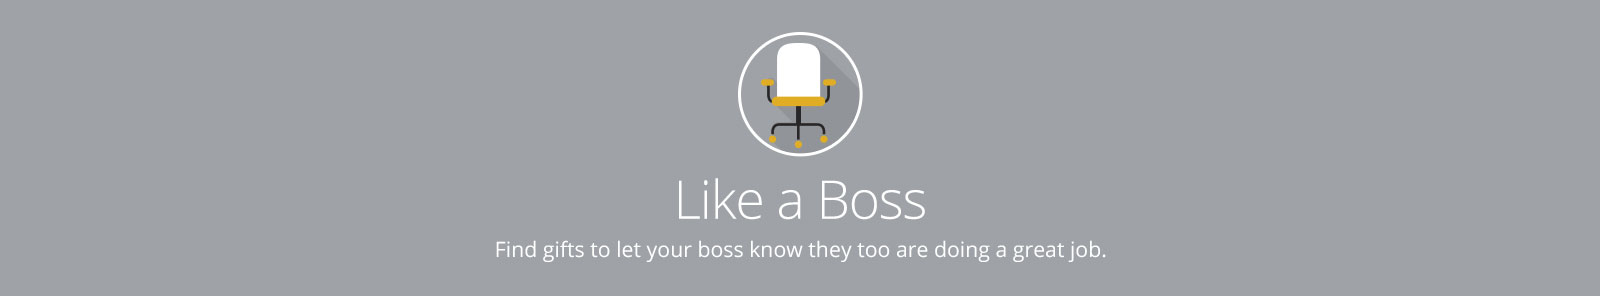 Like A Boss Desktop Banner